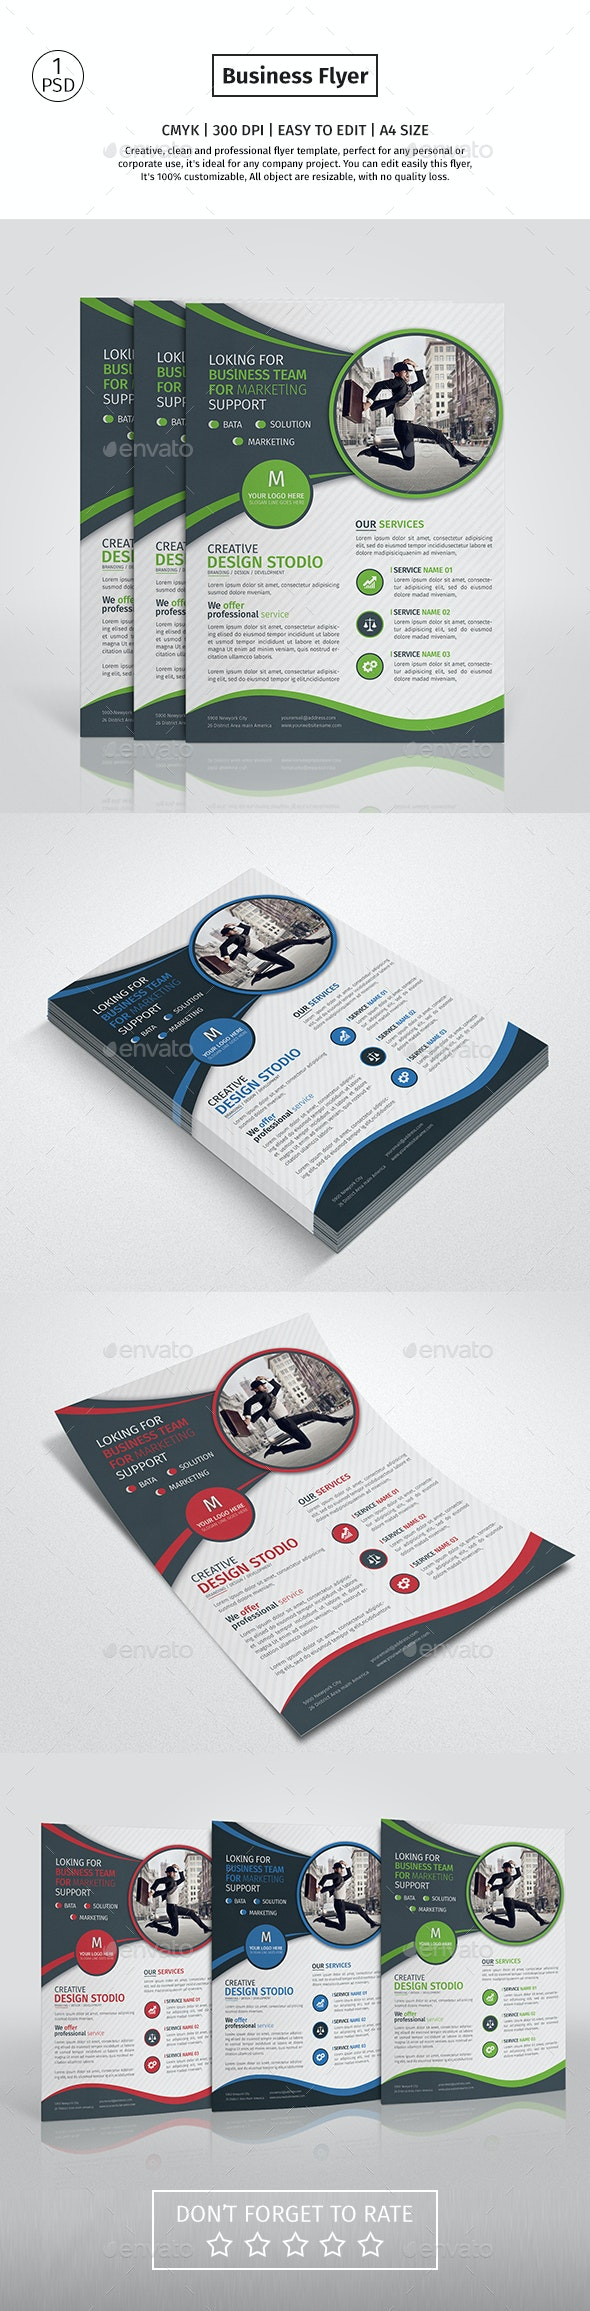 A4 Corporate Business Flyer  - Corporate Flyers